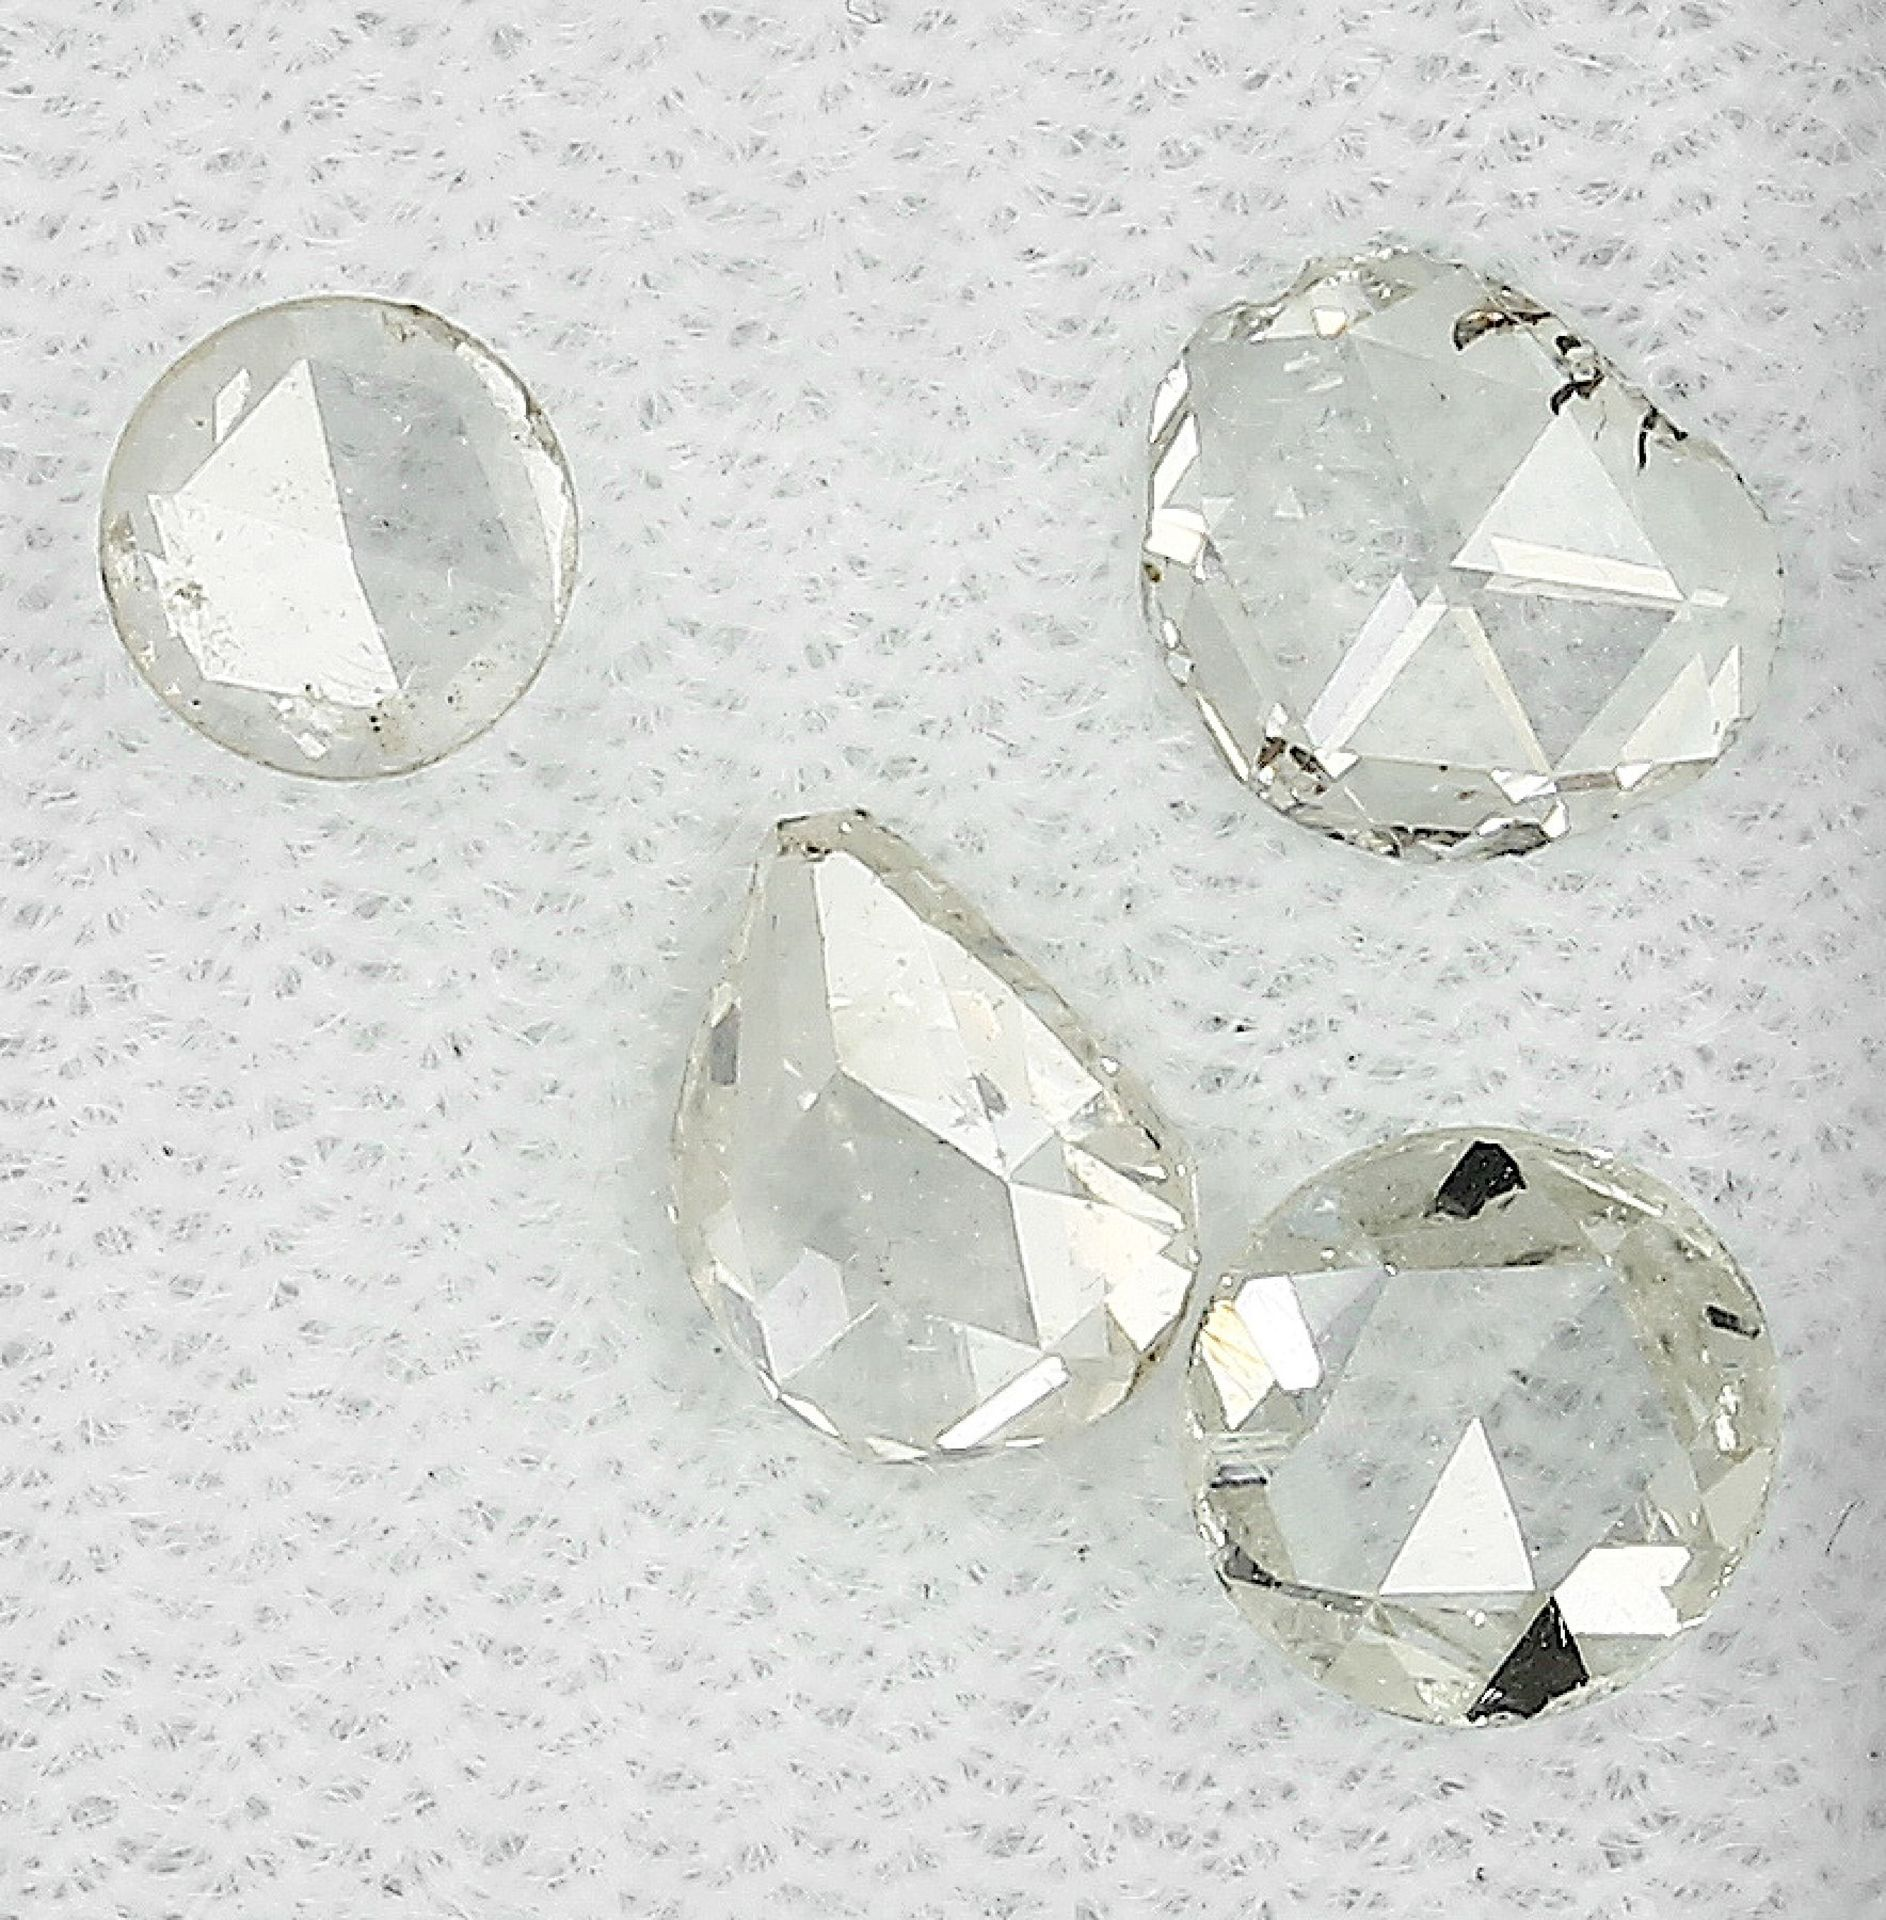 Lot 4 lose Diamantrosen, zus. ca. 1.83 ct, l.get.Weiß-get.Weiß/p1, AusfaßwareLot 4 loose diamond